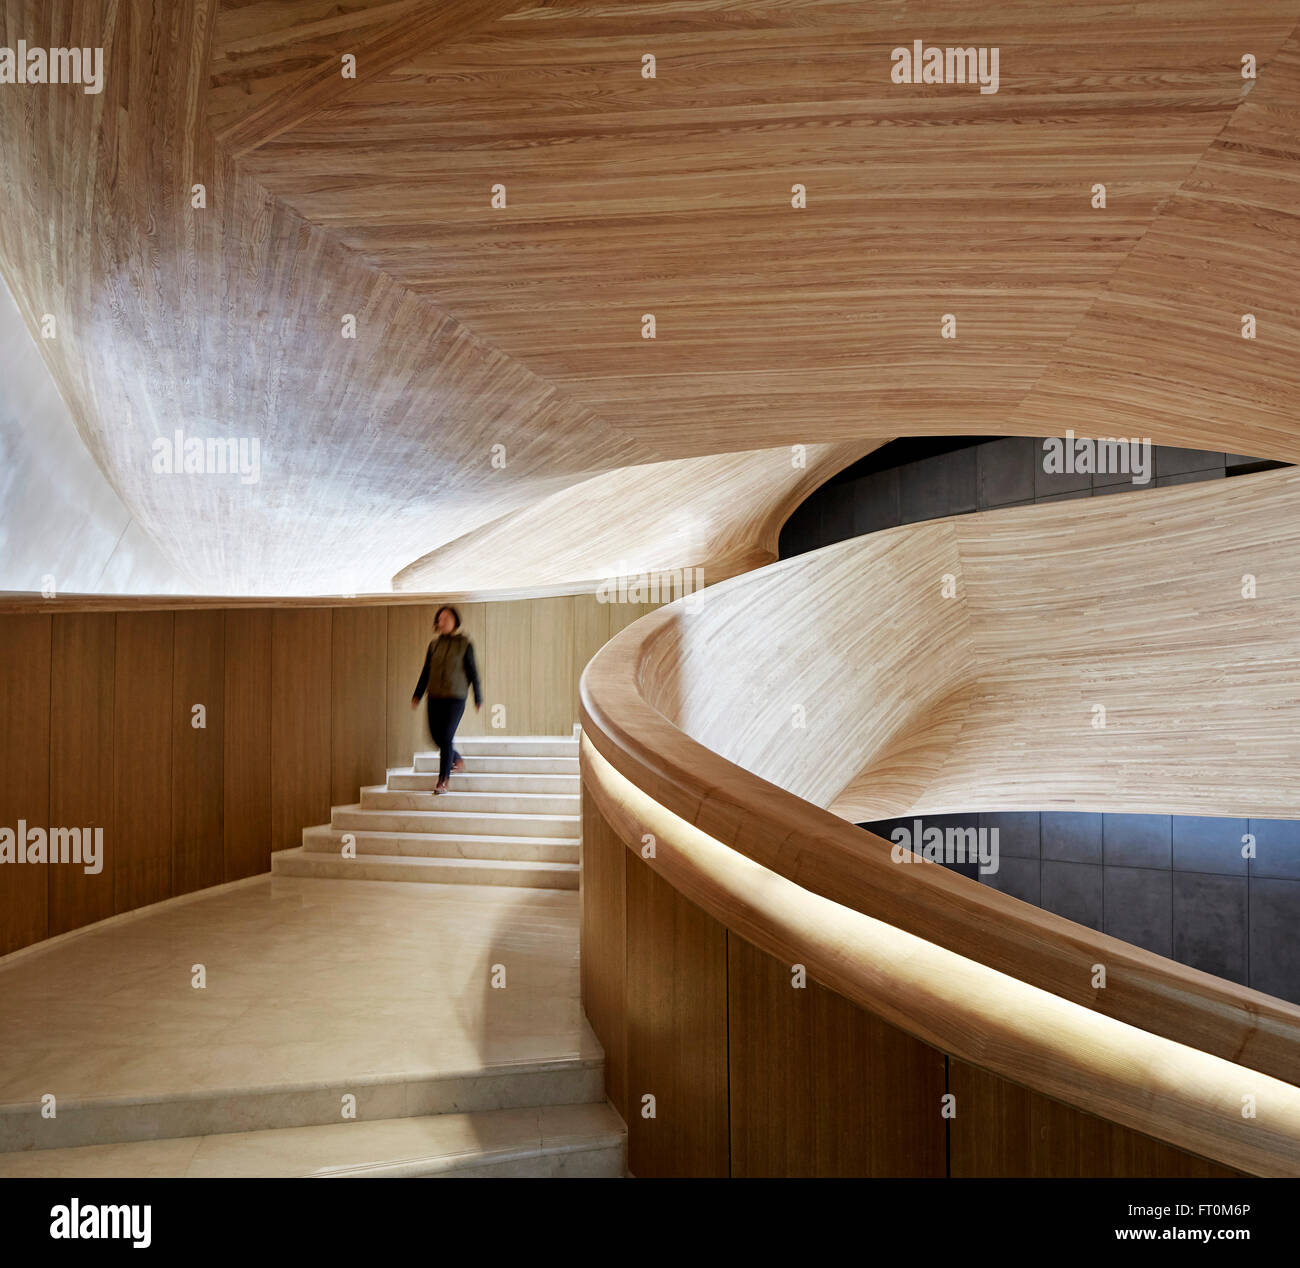 Winding stairway clad in timber harbin opera house for Beijing opera house architect